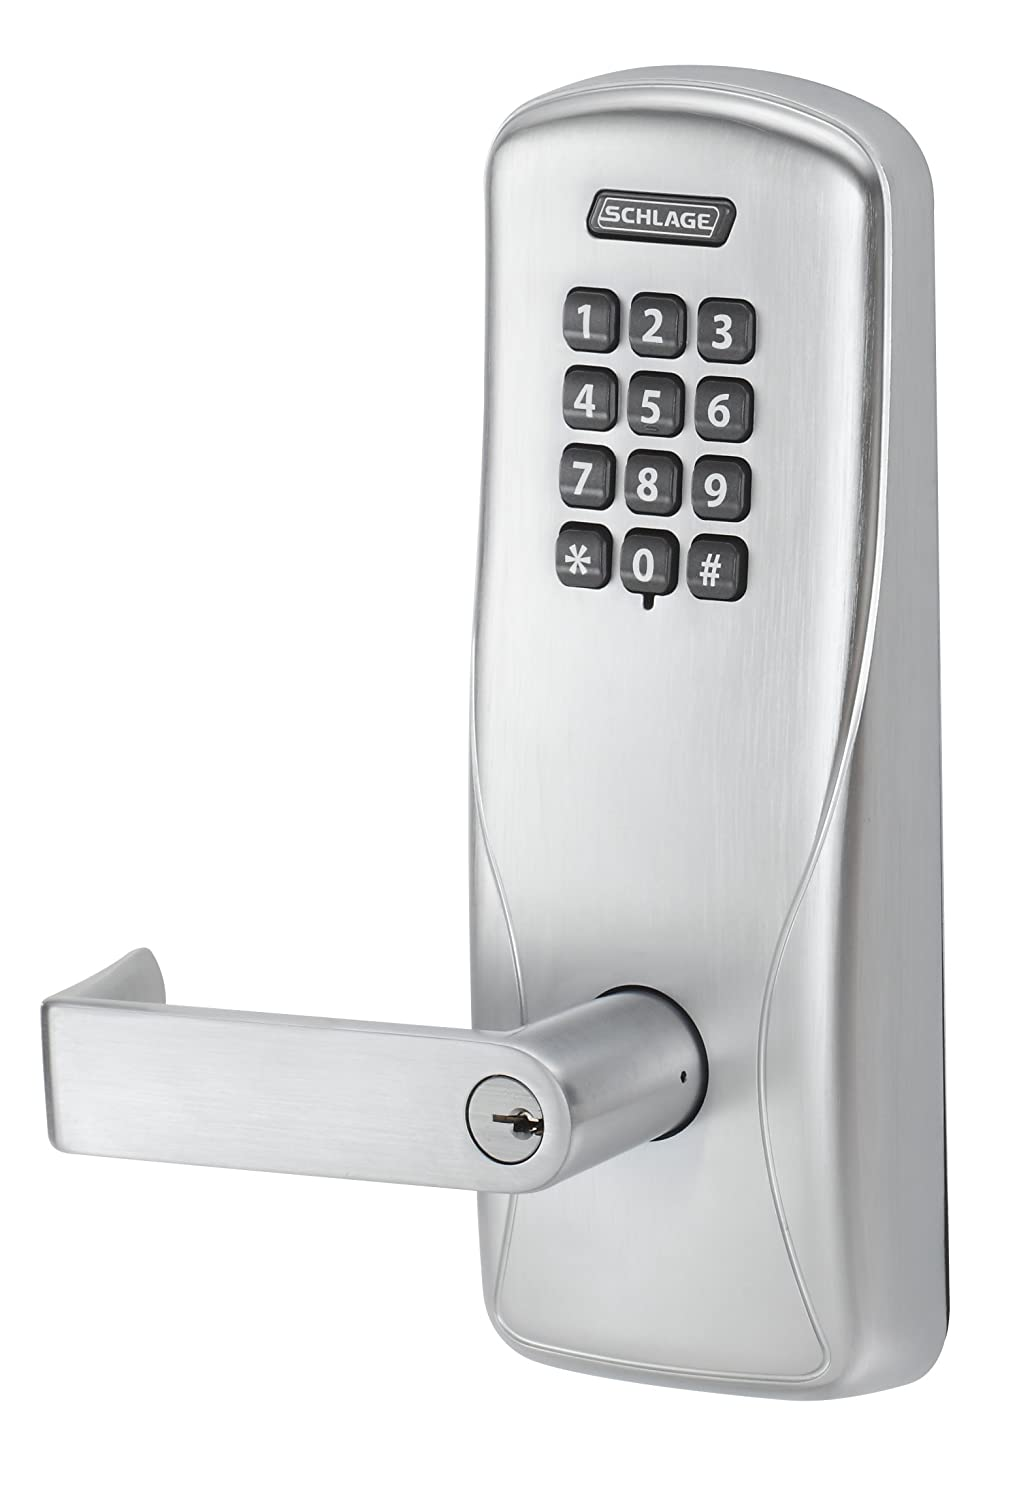 Schlage CO220 CY75KP RHO 626 Electronics Security Lock Rhodes for 13049 10025 KD